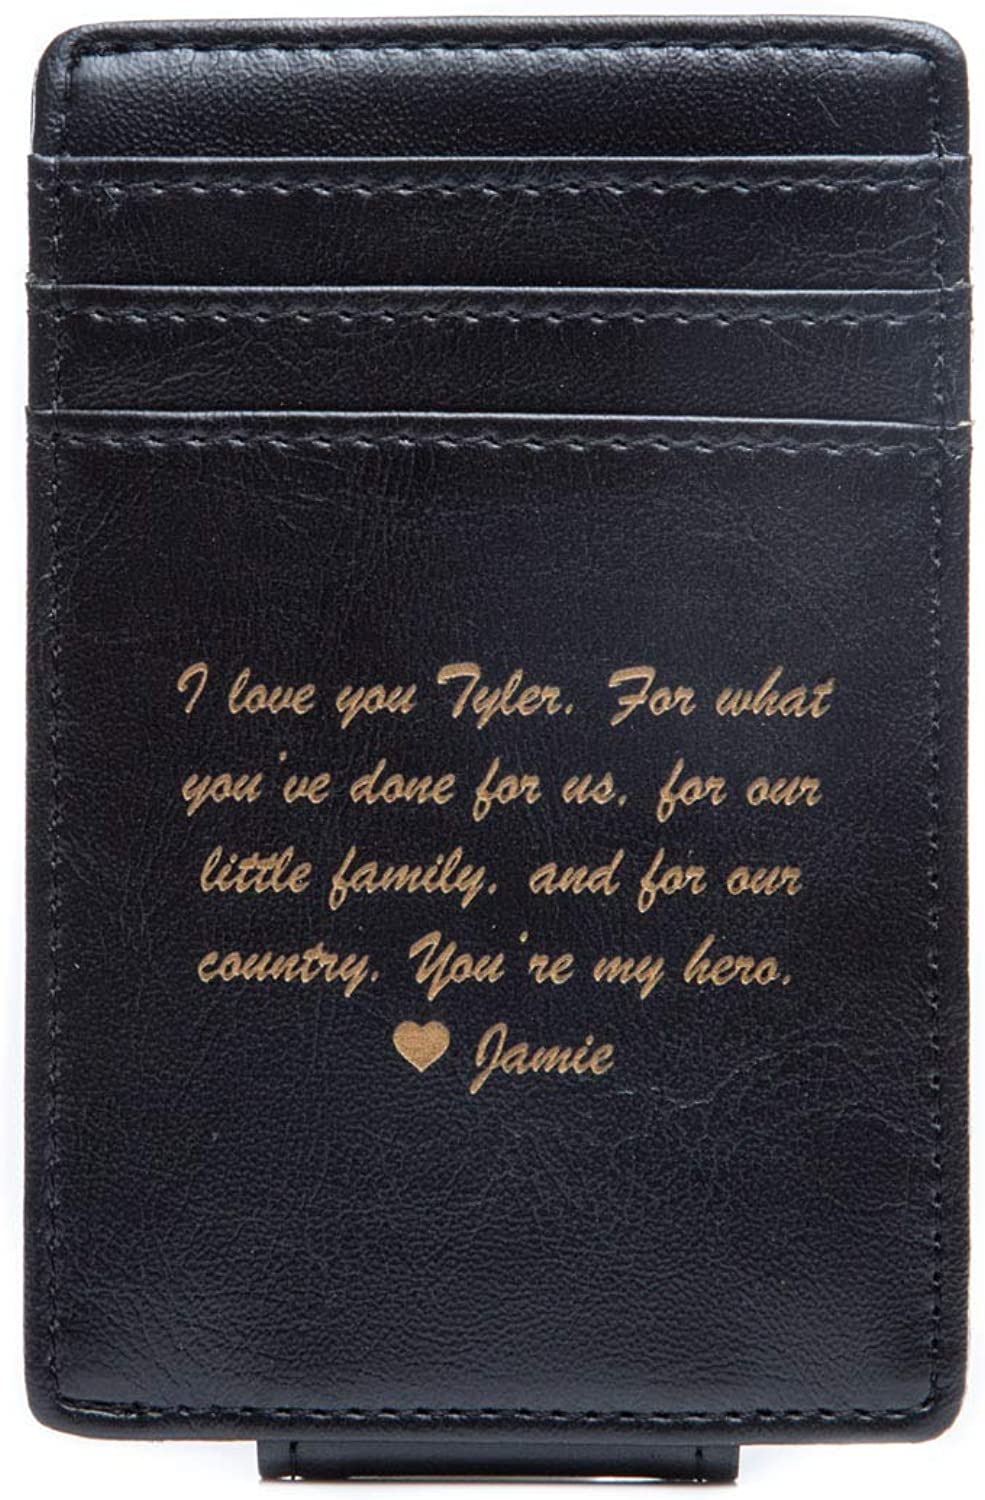 Swanky Badger Personalized Wallet – Money Clip Leather Wallet, Magnetic Clip, Card Slots